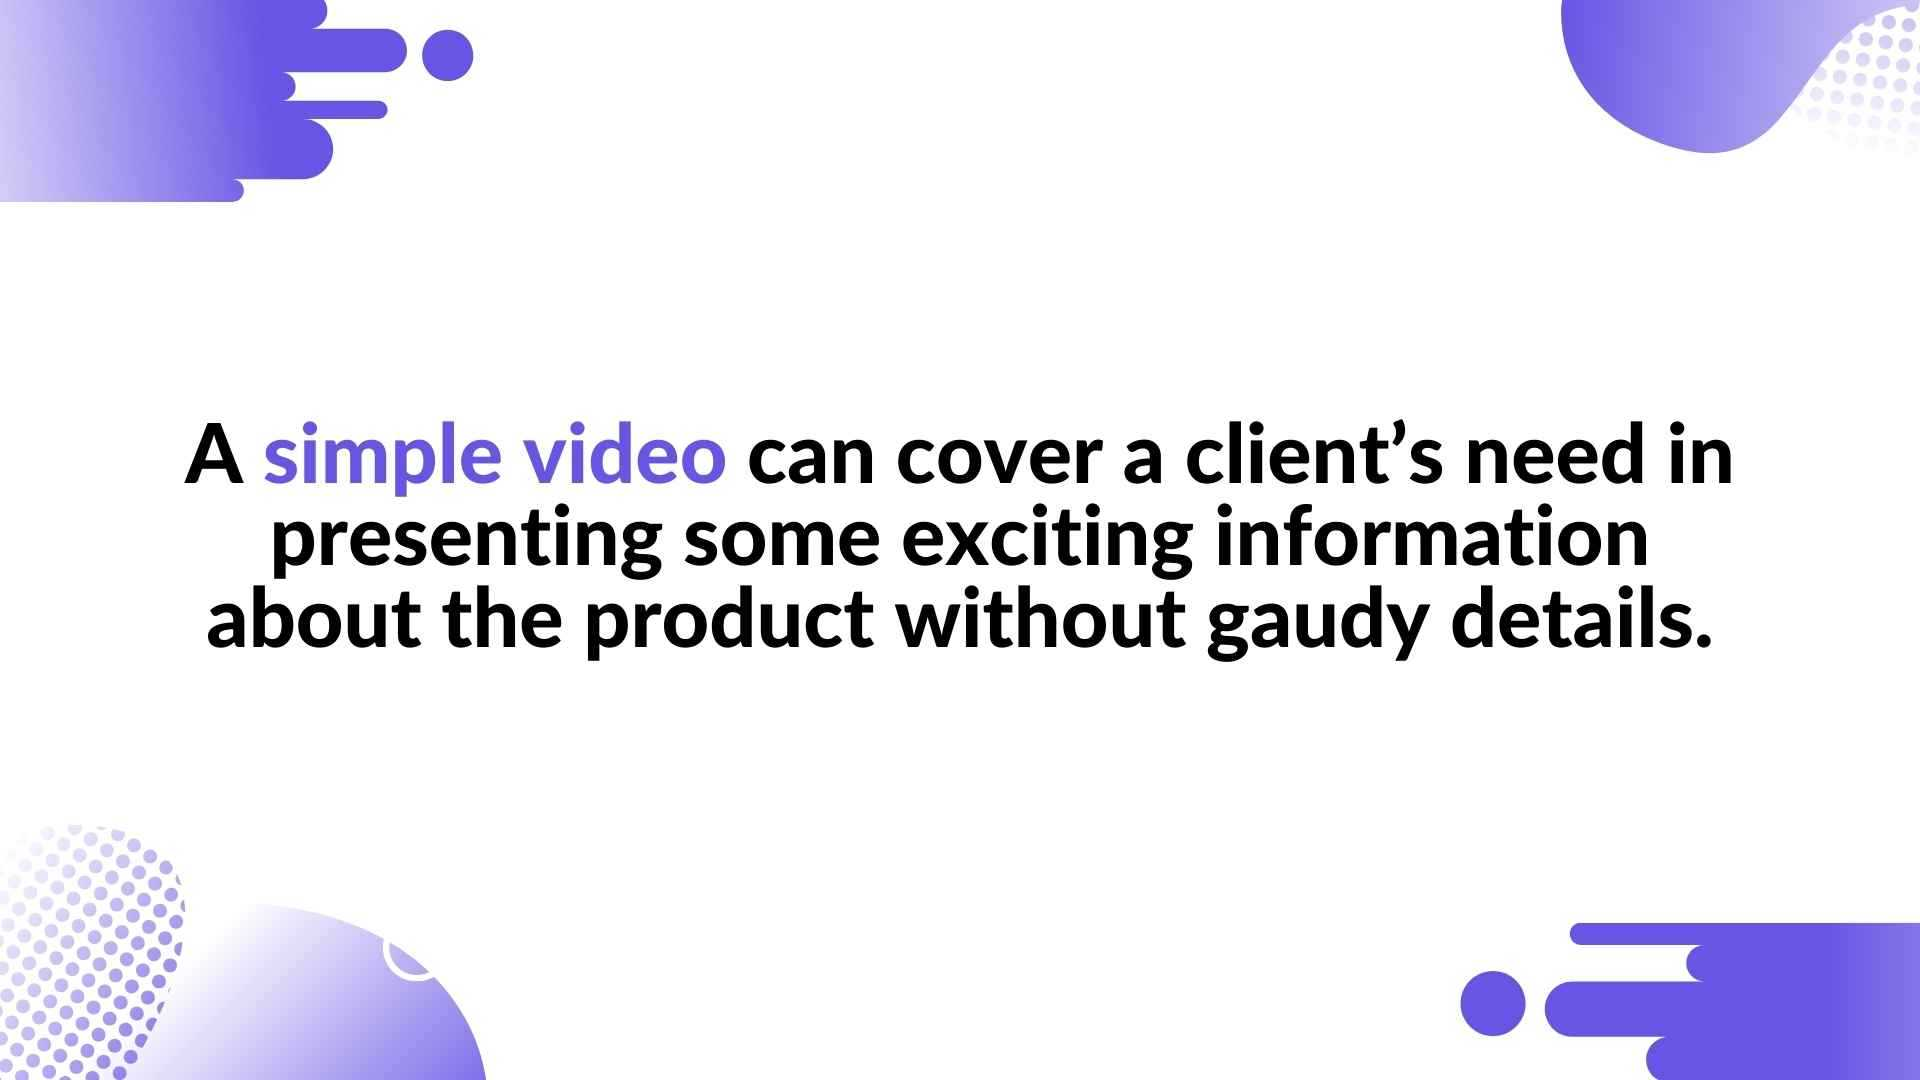 A simple video can cover a client's need in presenting some exciting information about the product without gaudy details.